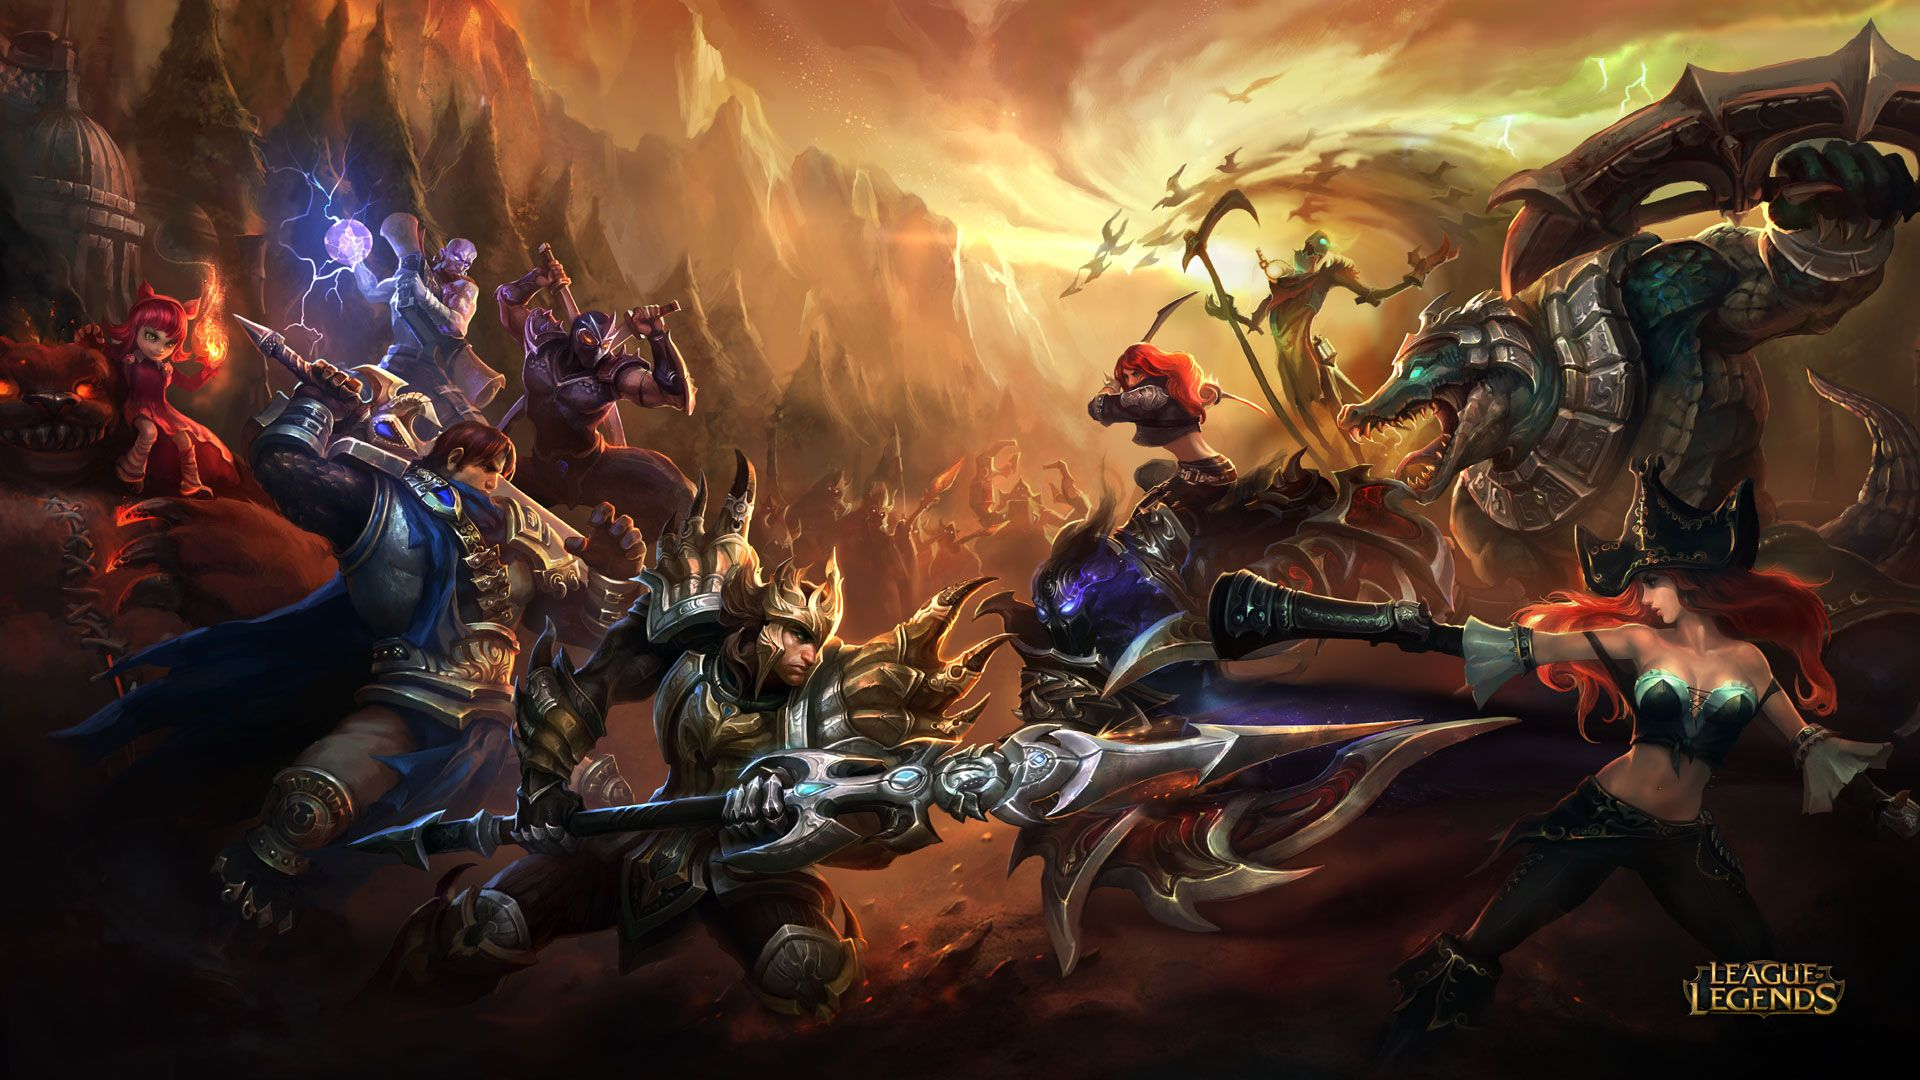 Riot Games hit with lawsuit from employees over gender discrimination and sexual harassment